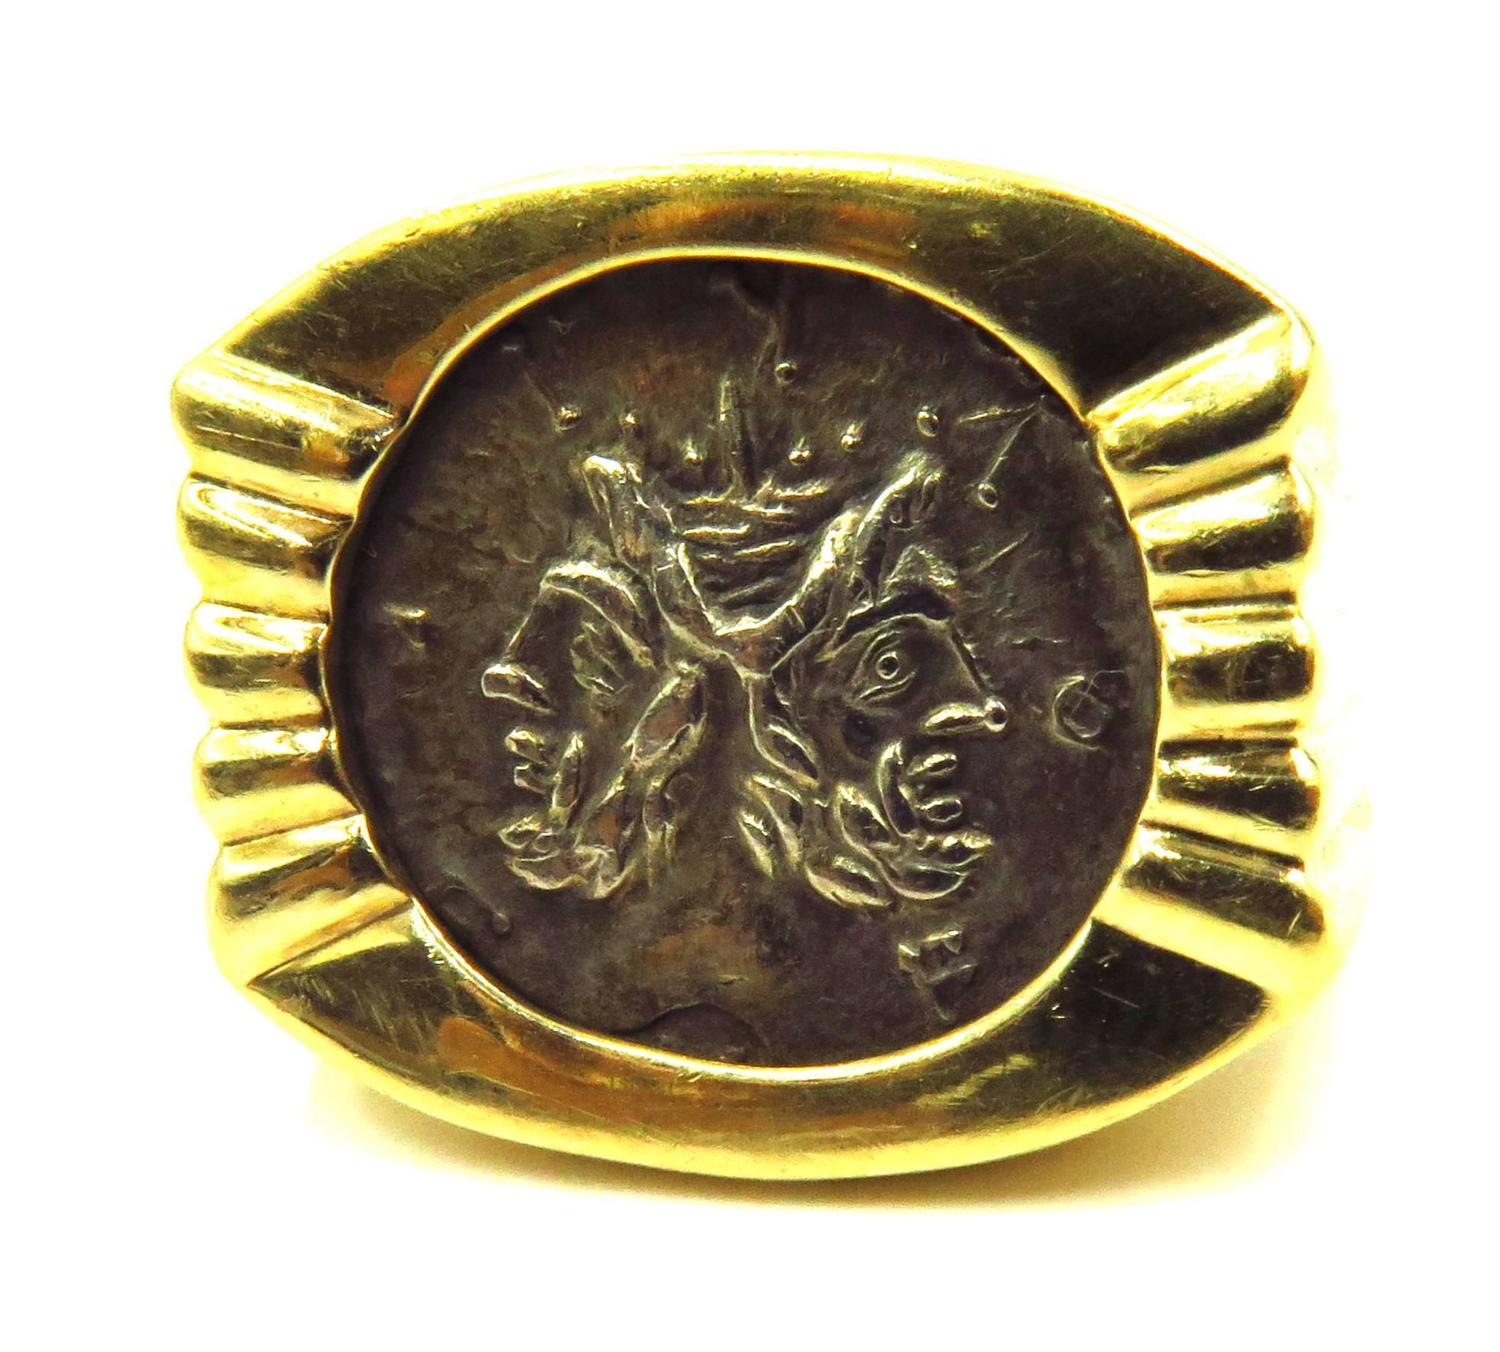 Unique Coin Unique Ancient Coin Roman God Janus Denarius Gold Ring At